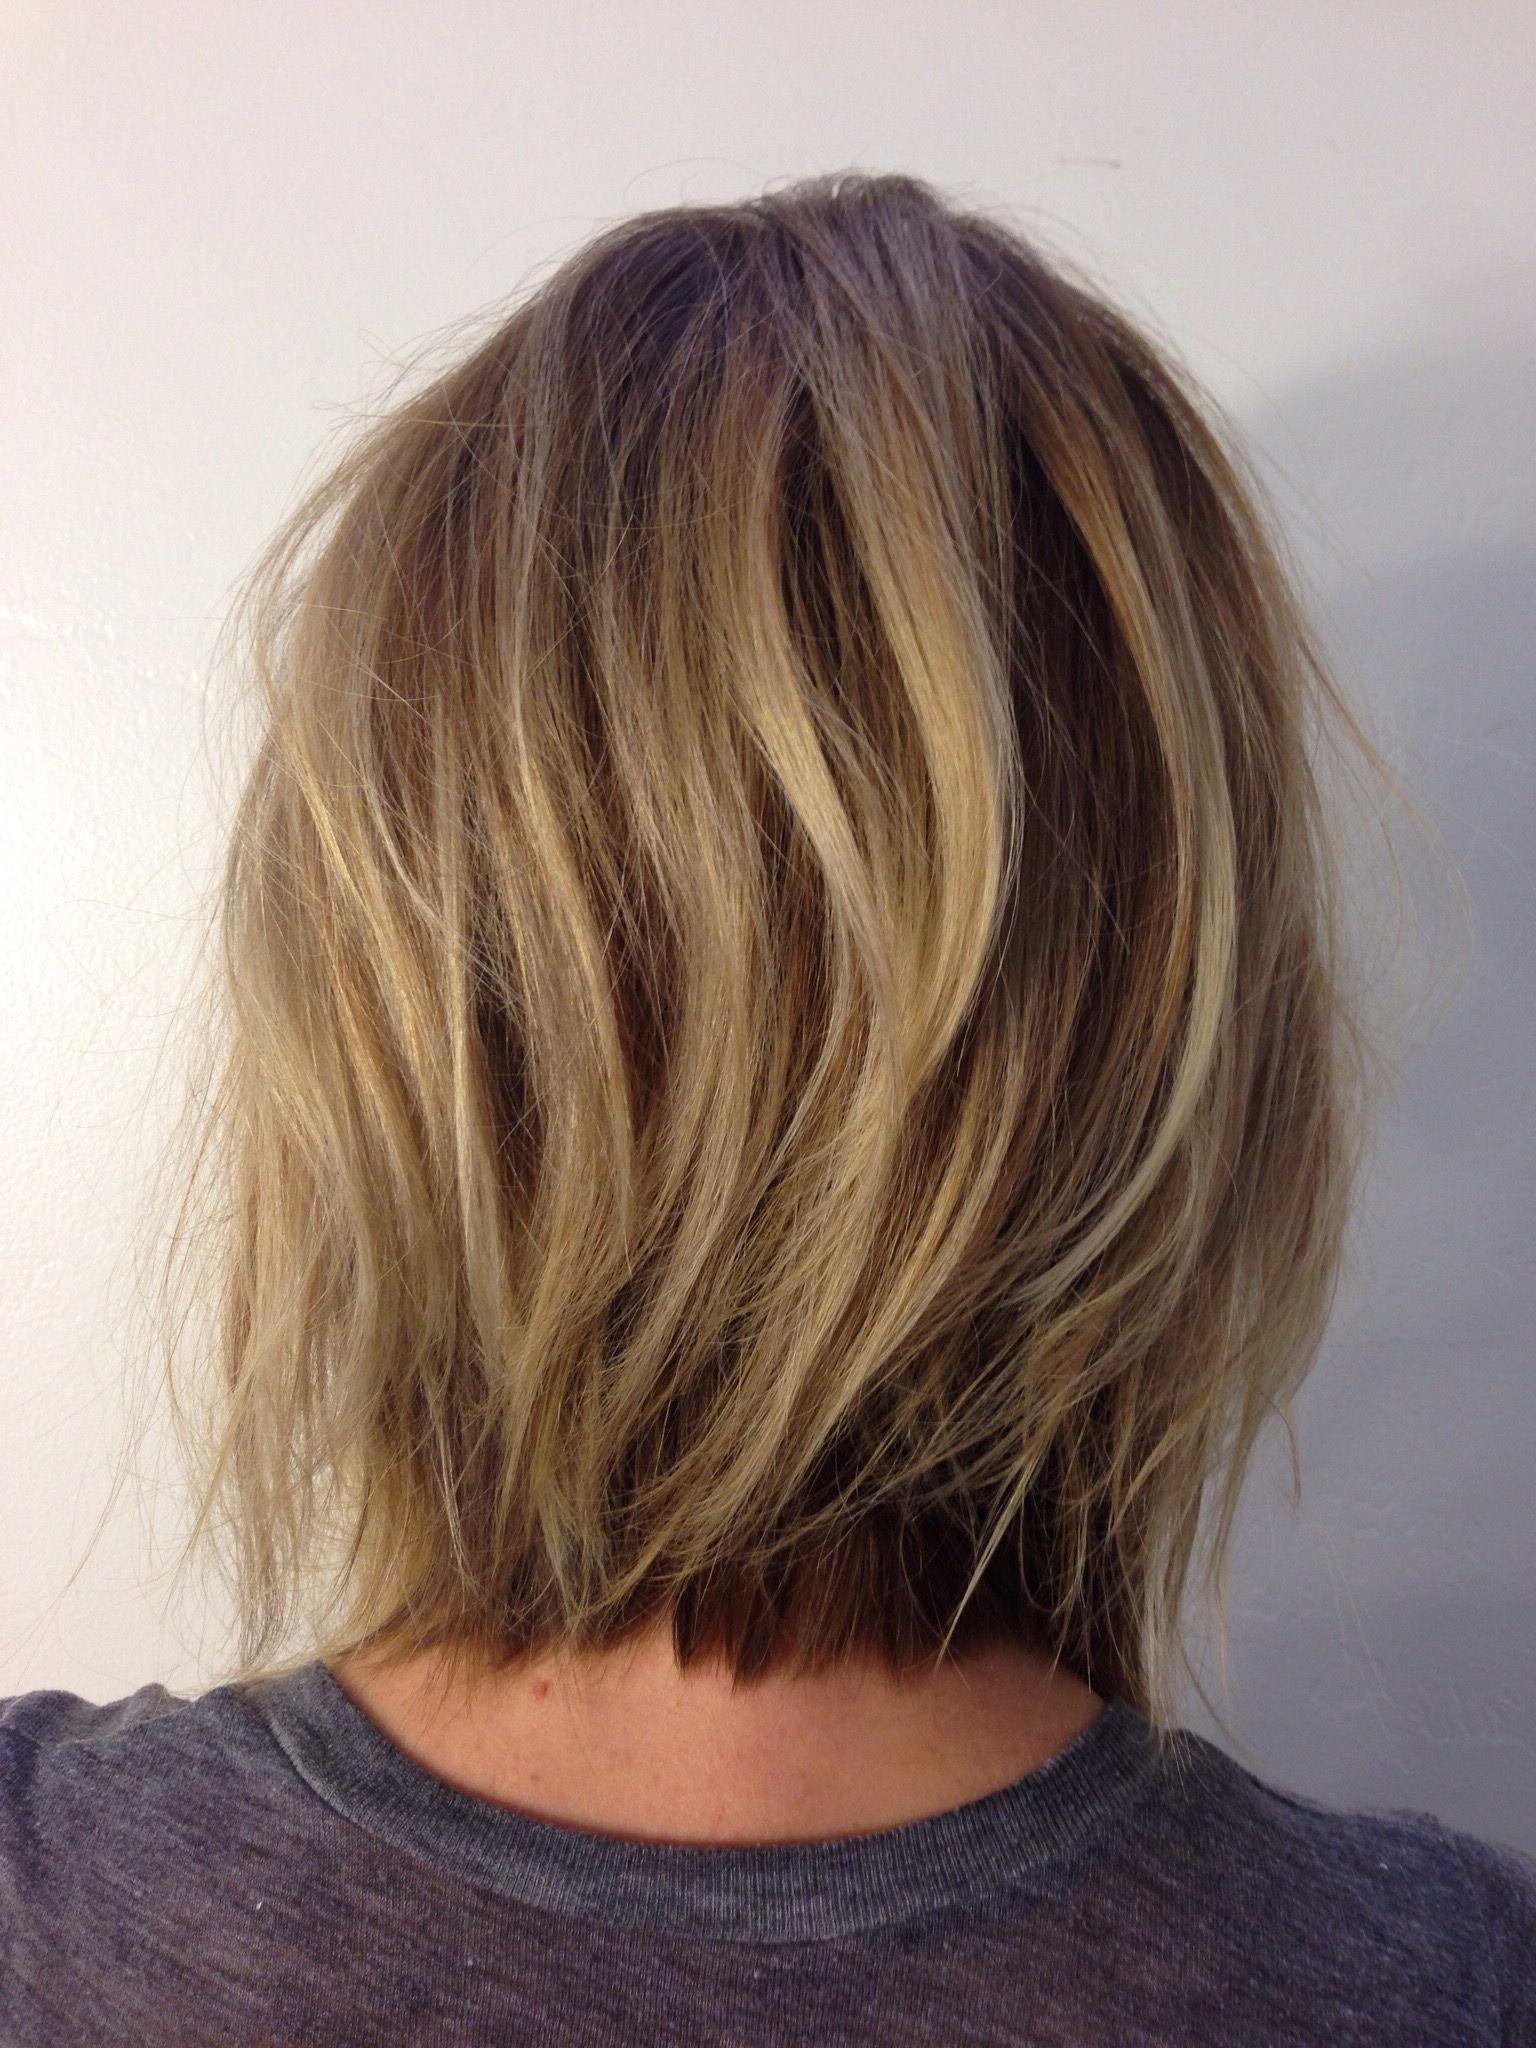 Andreamillerhair  Neck Length Layers … | Hair Cut In 2018… Within Nape Length Brown Bob Hairstyles With Messy Curls (View 18 of 20)